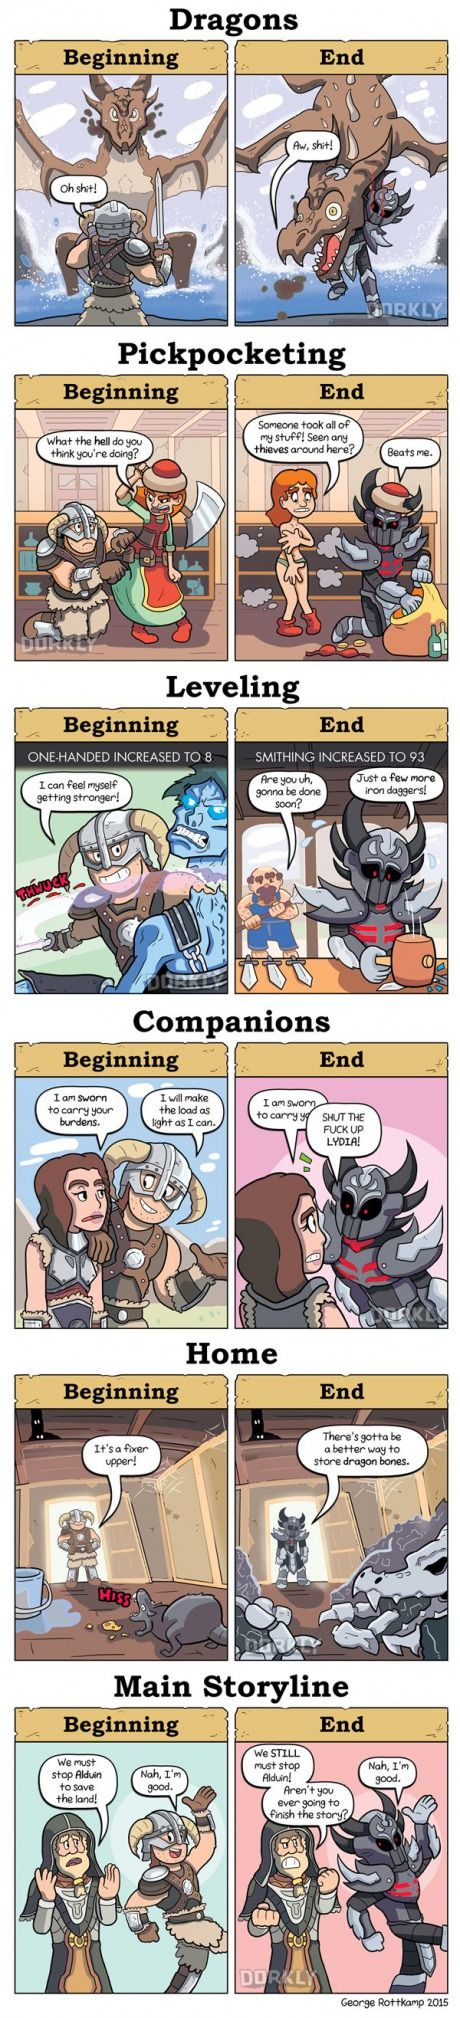 Skyrim: Beginning vs. End